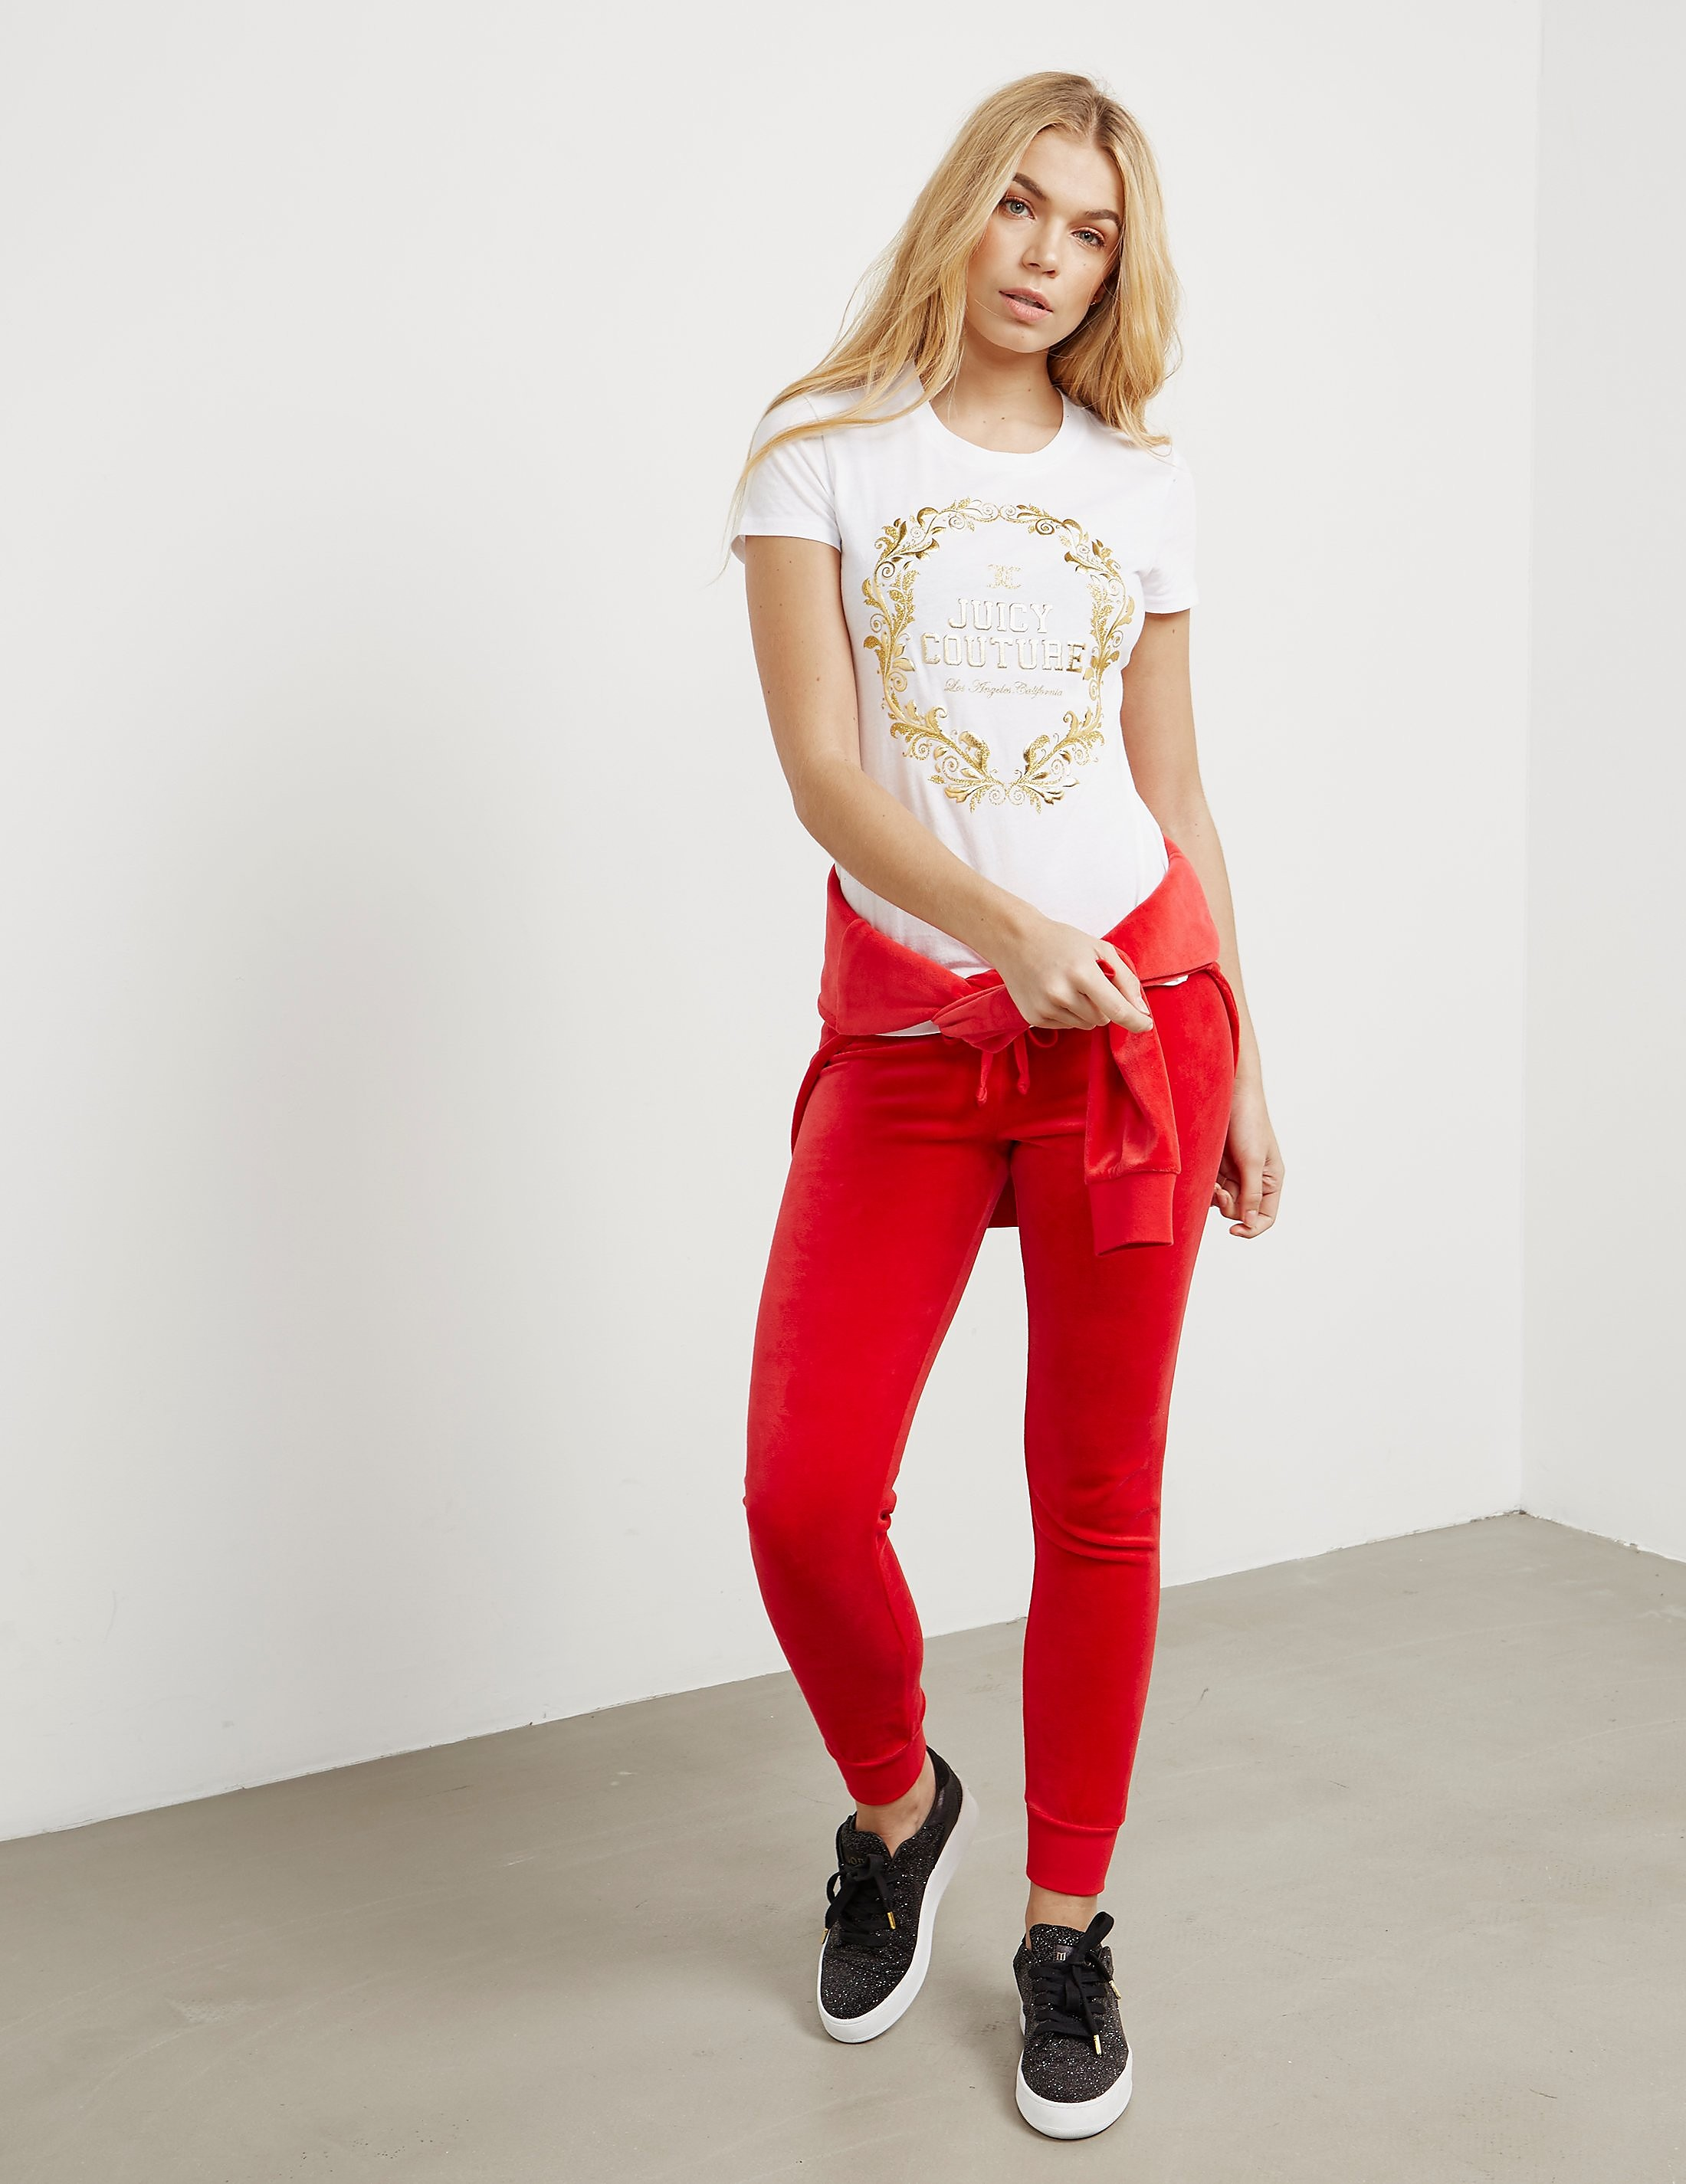 Juicy Couture Wreath Short Sleeve T-Shirt